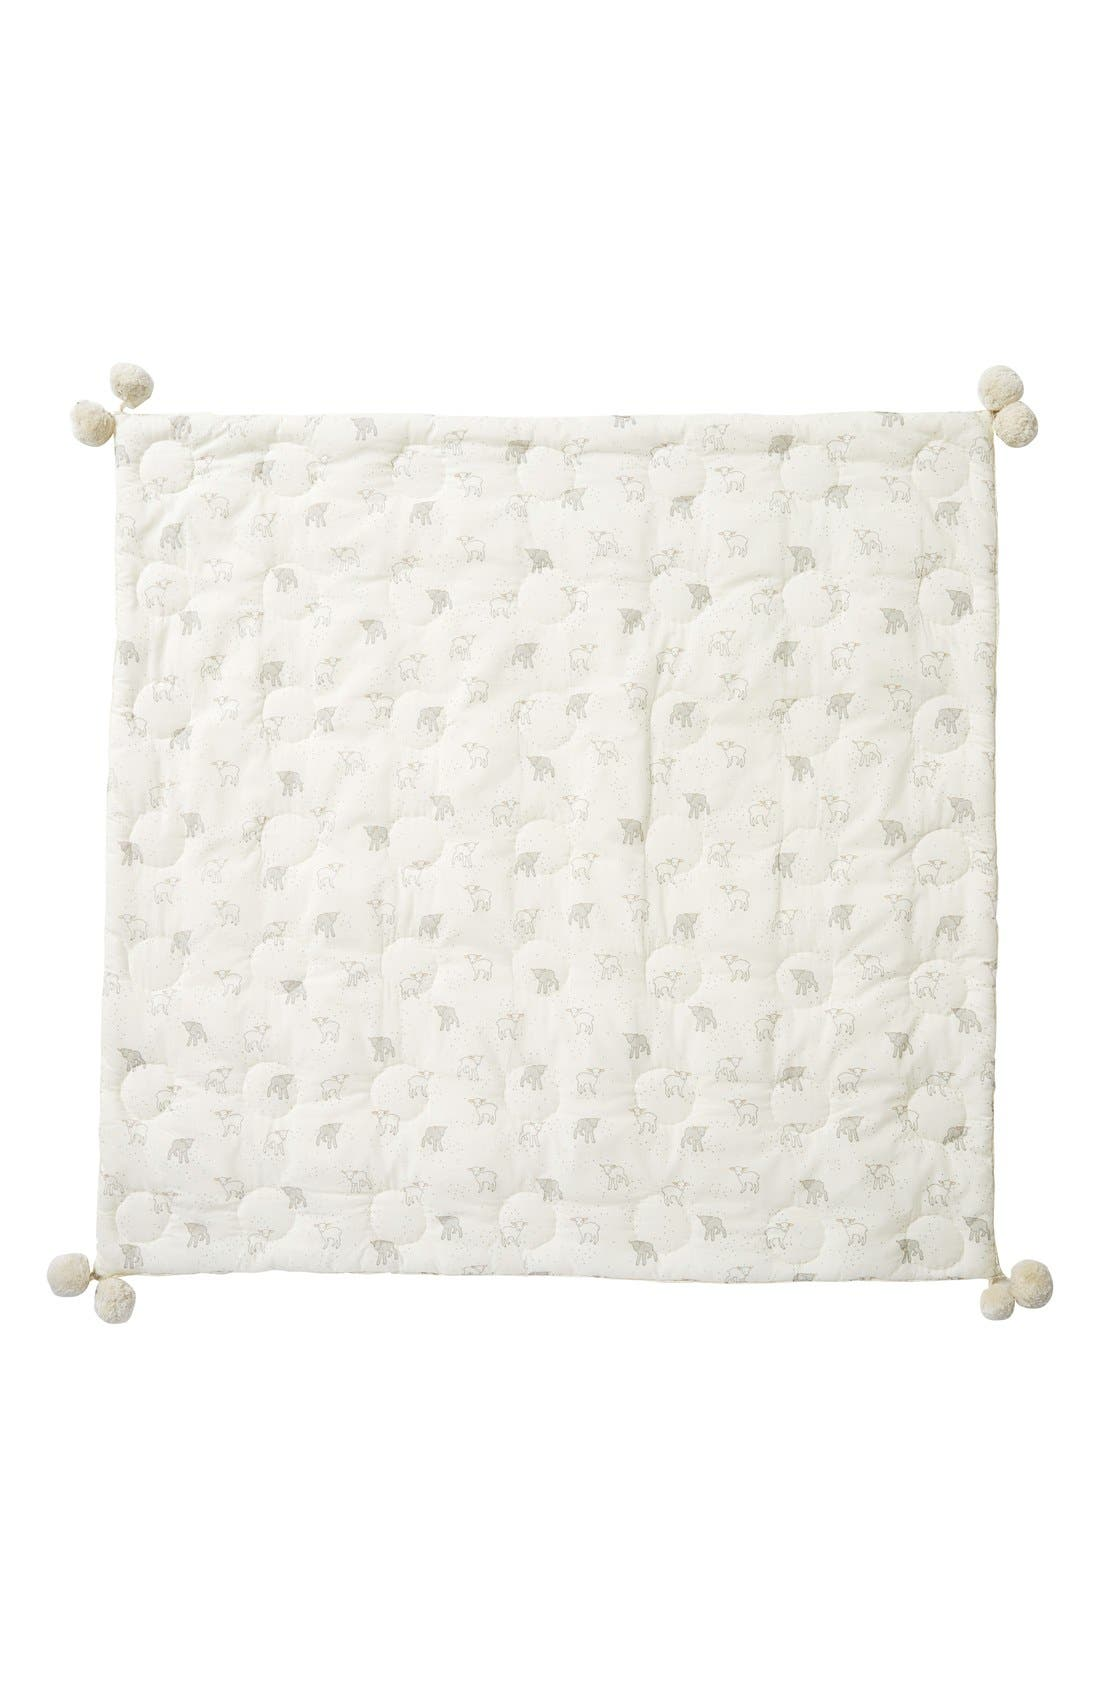 Little Lamb Baby Blanket,                             Main thumbnail 1, color,                             907